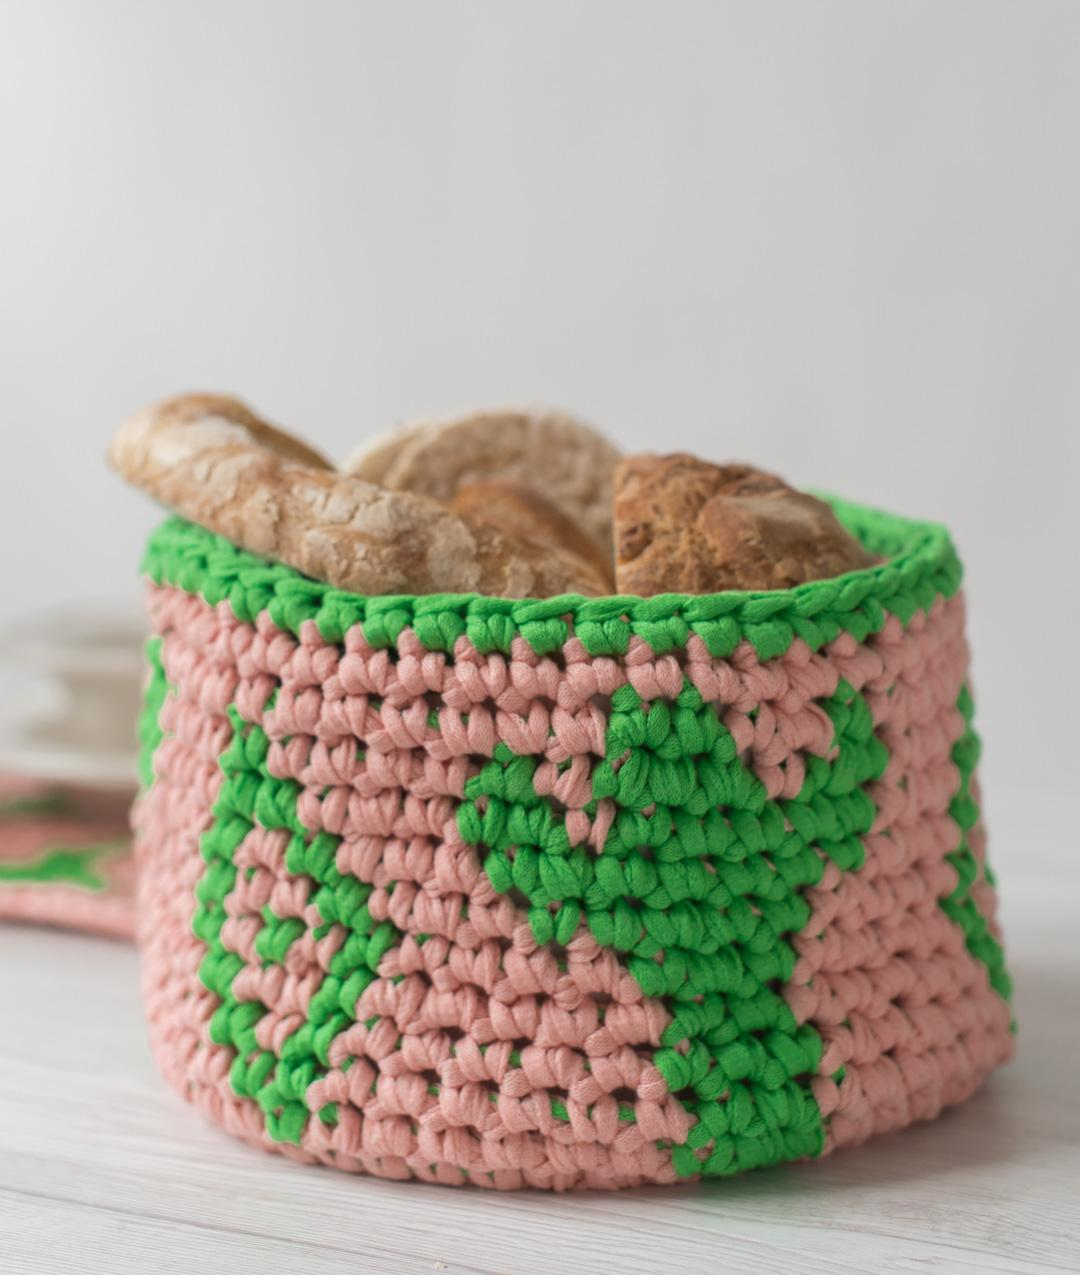 Homeware - Cotton - CACTUS BASKET - 1